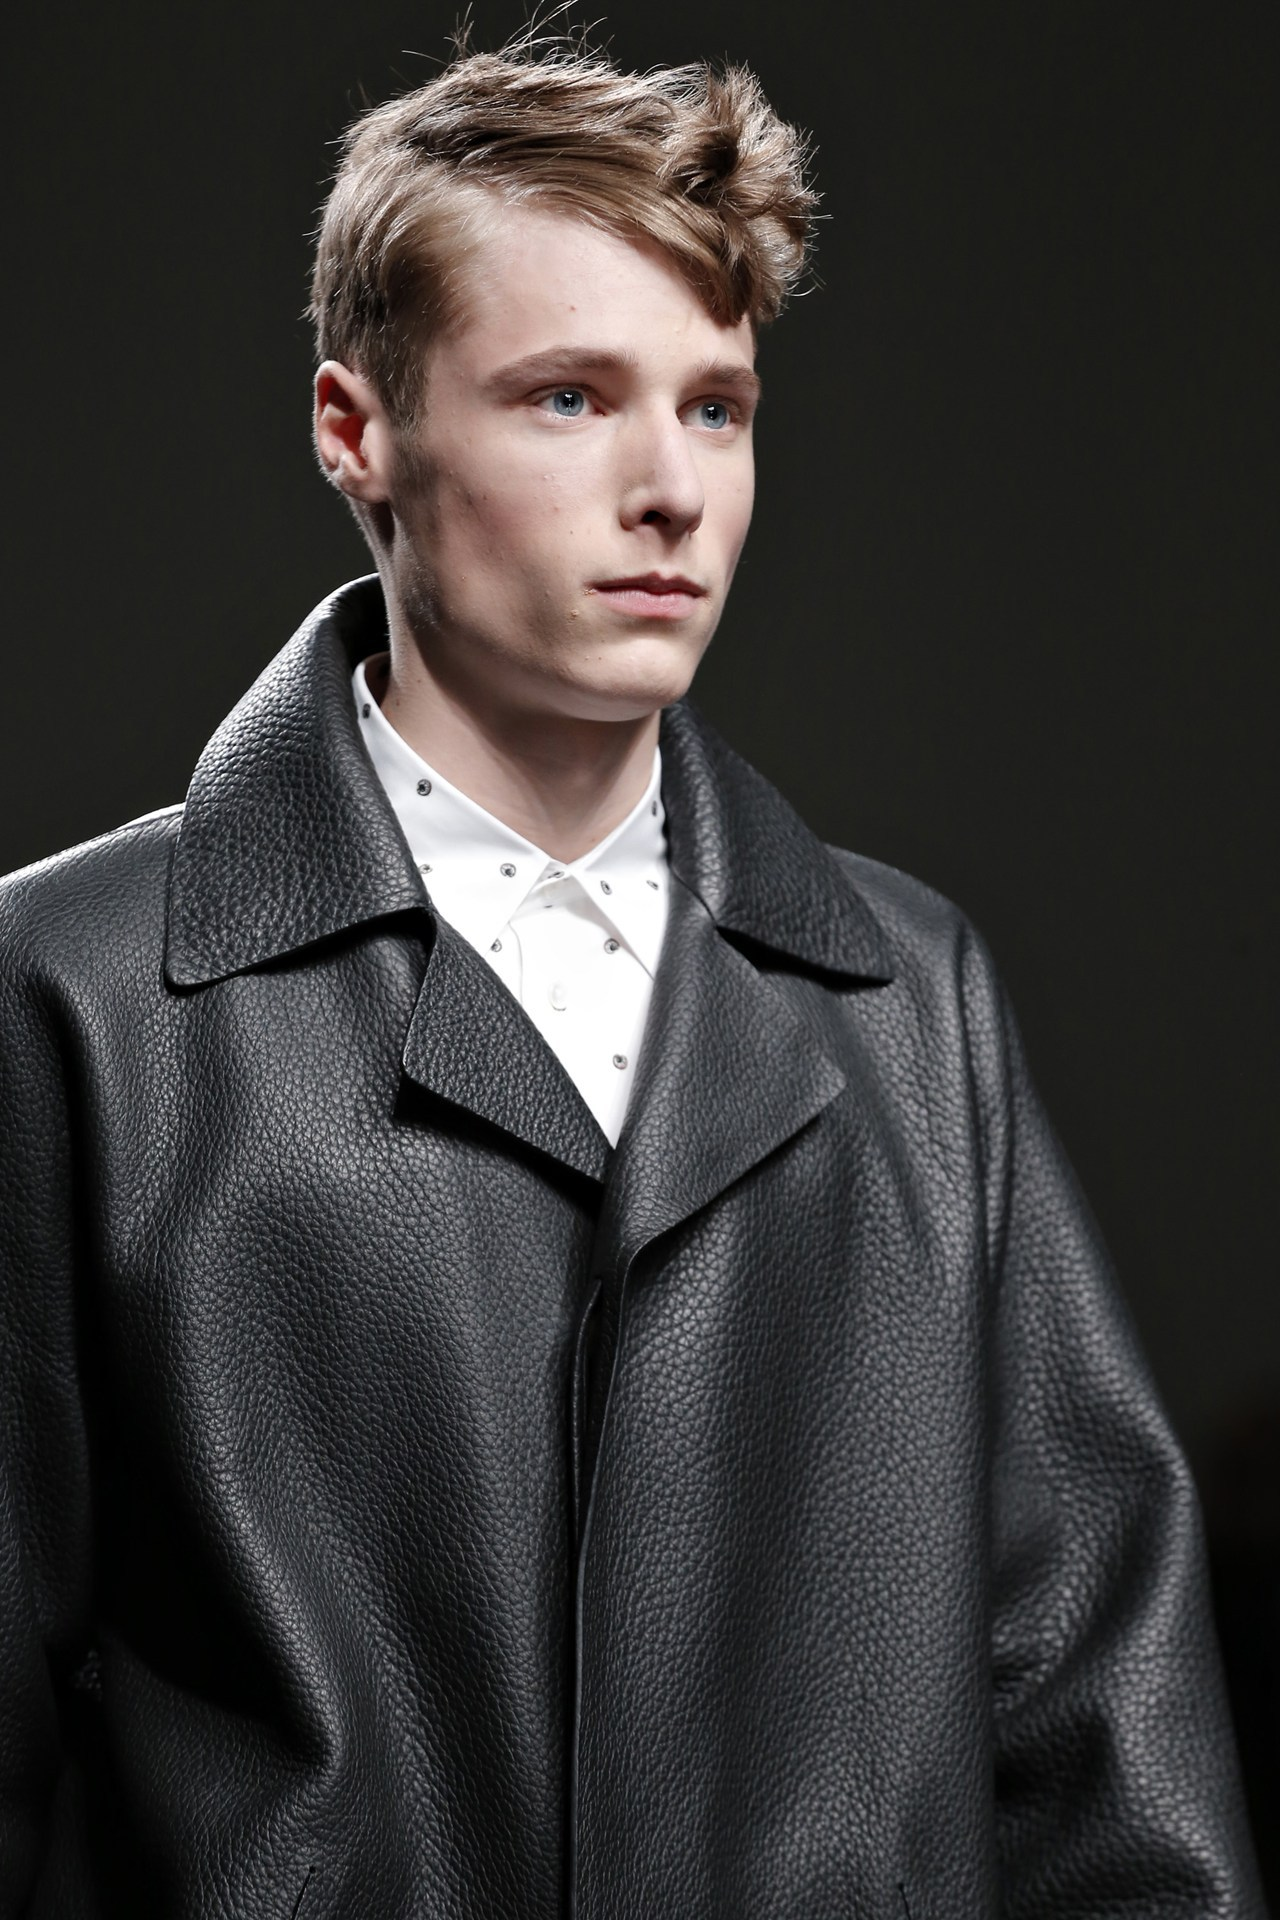 Louis Vuitton Menswear Fall/Winter 2013